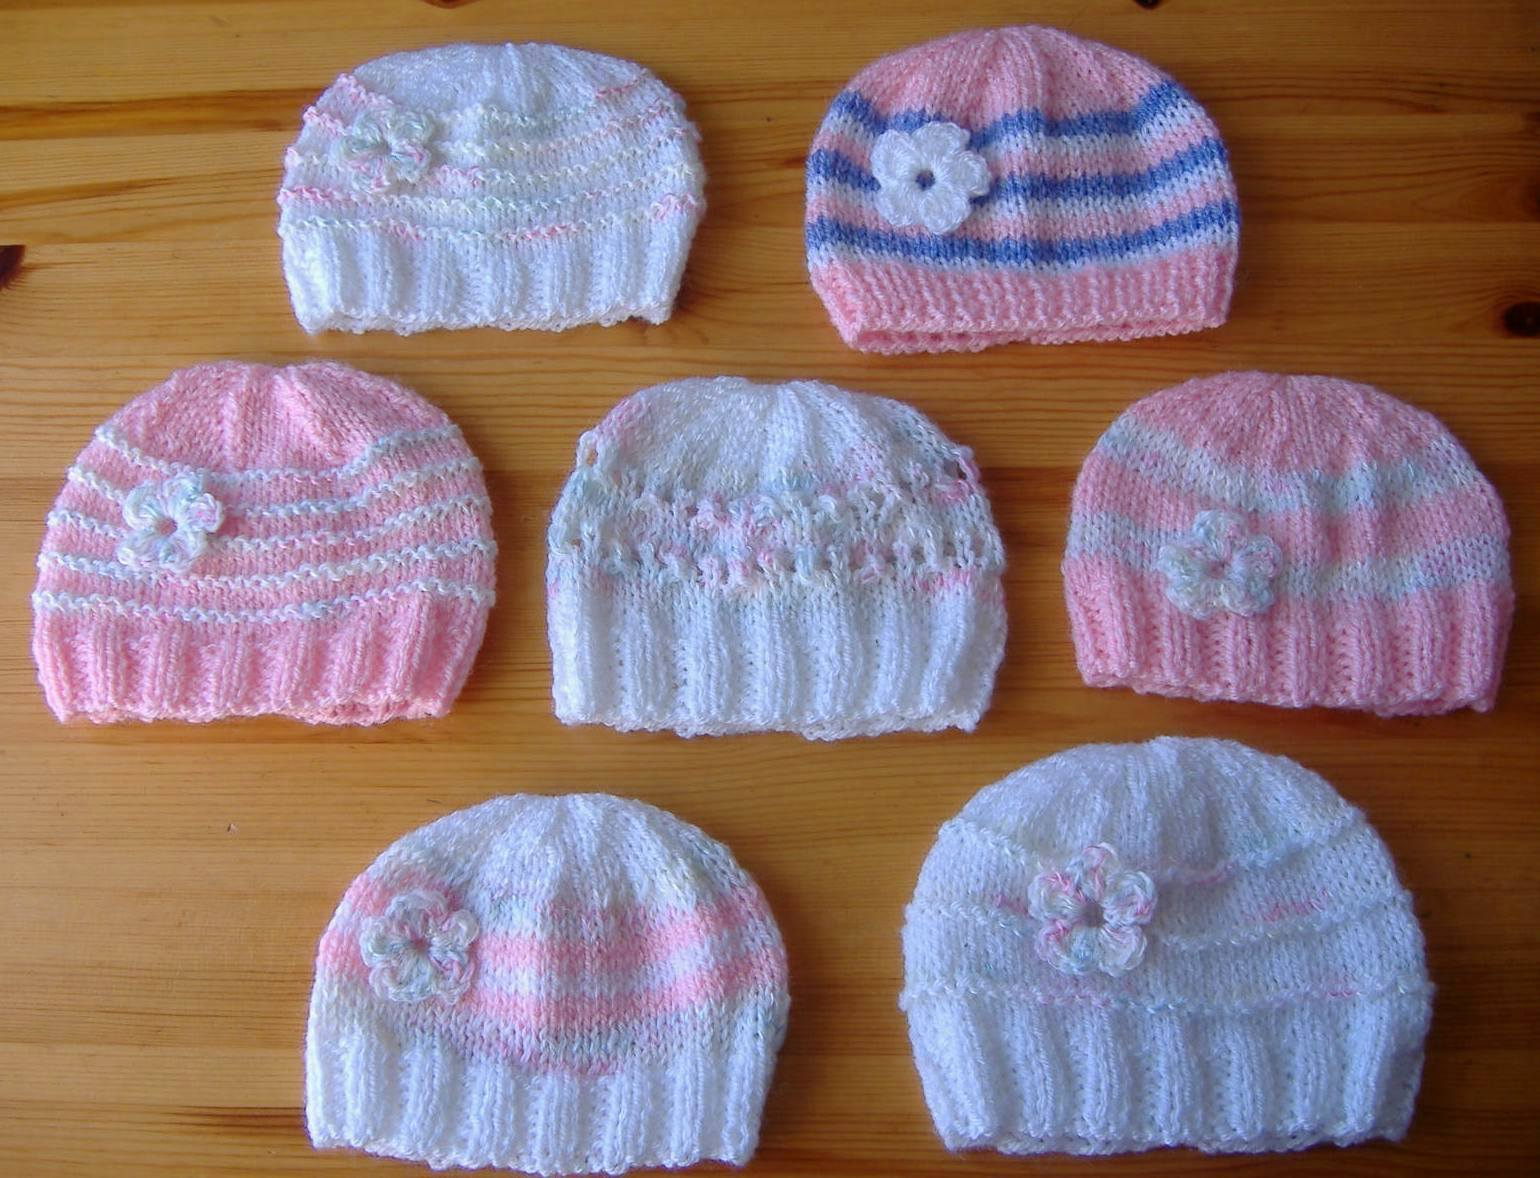 Knitting Patterns For Babies To Download : mariannas lazy daisy days: Knitted Baby Girl Hats